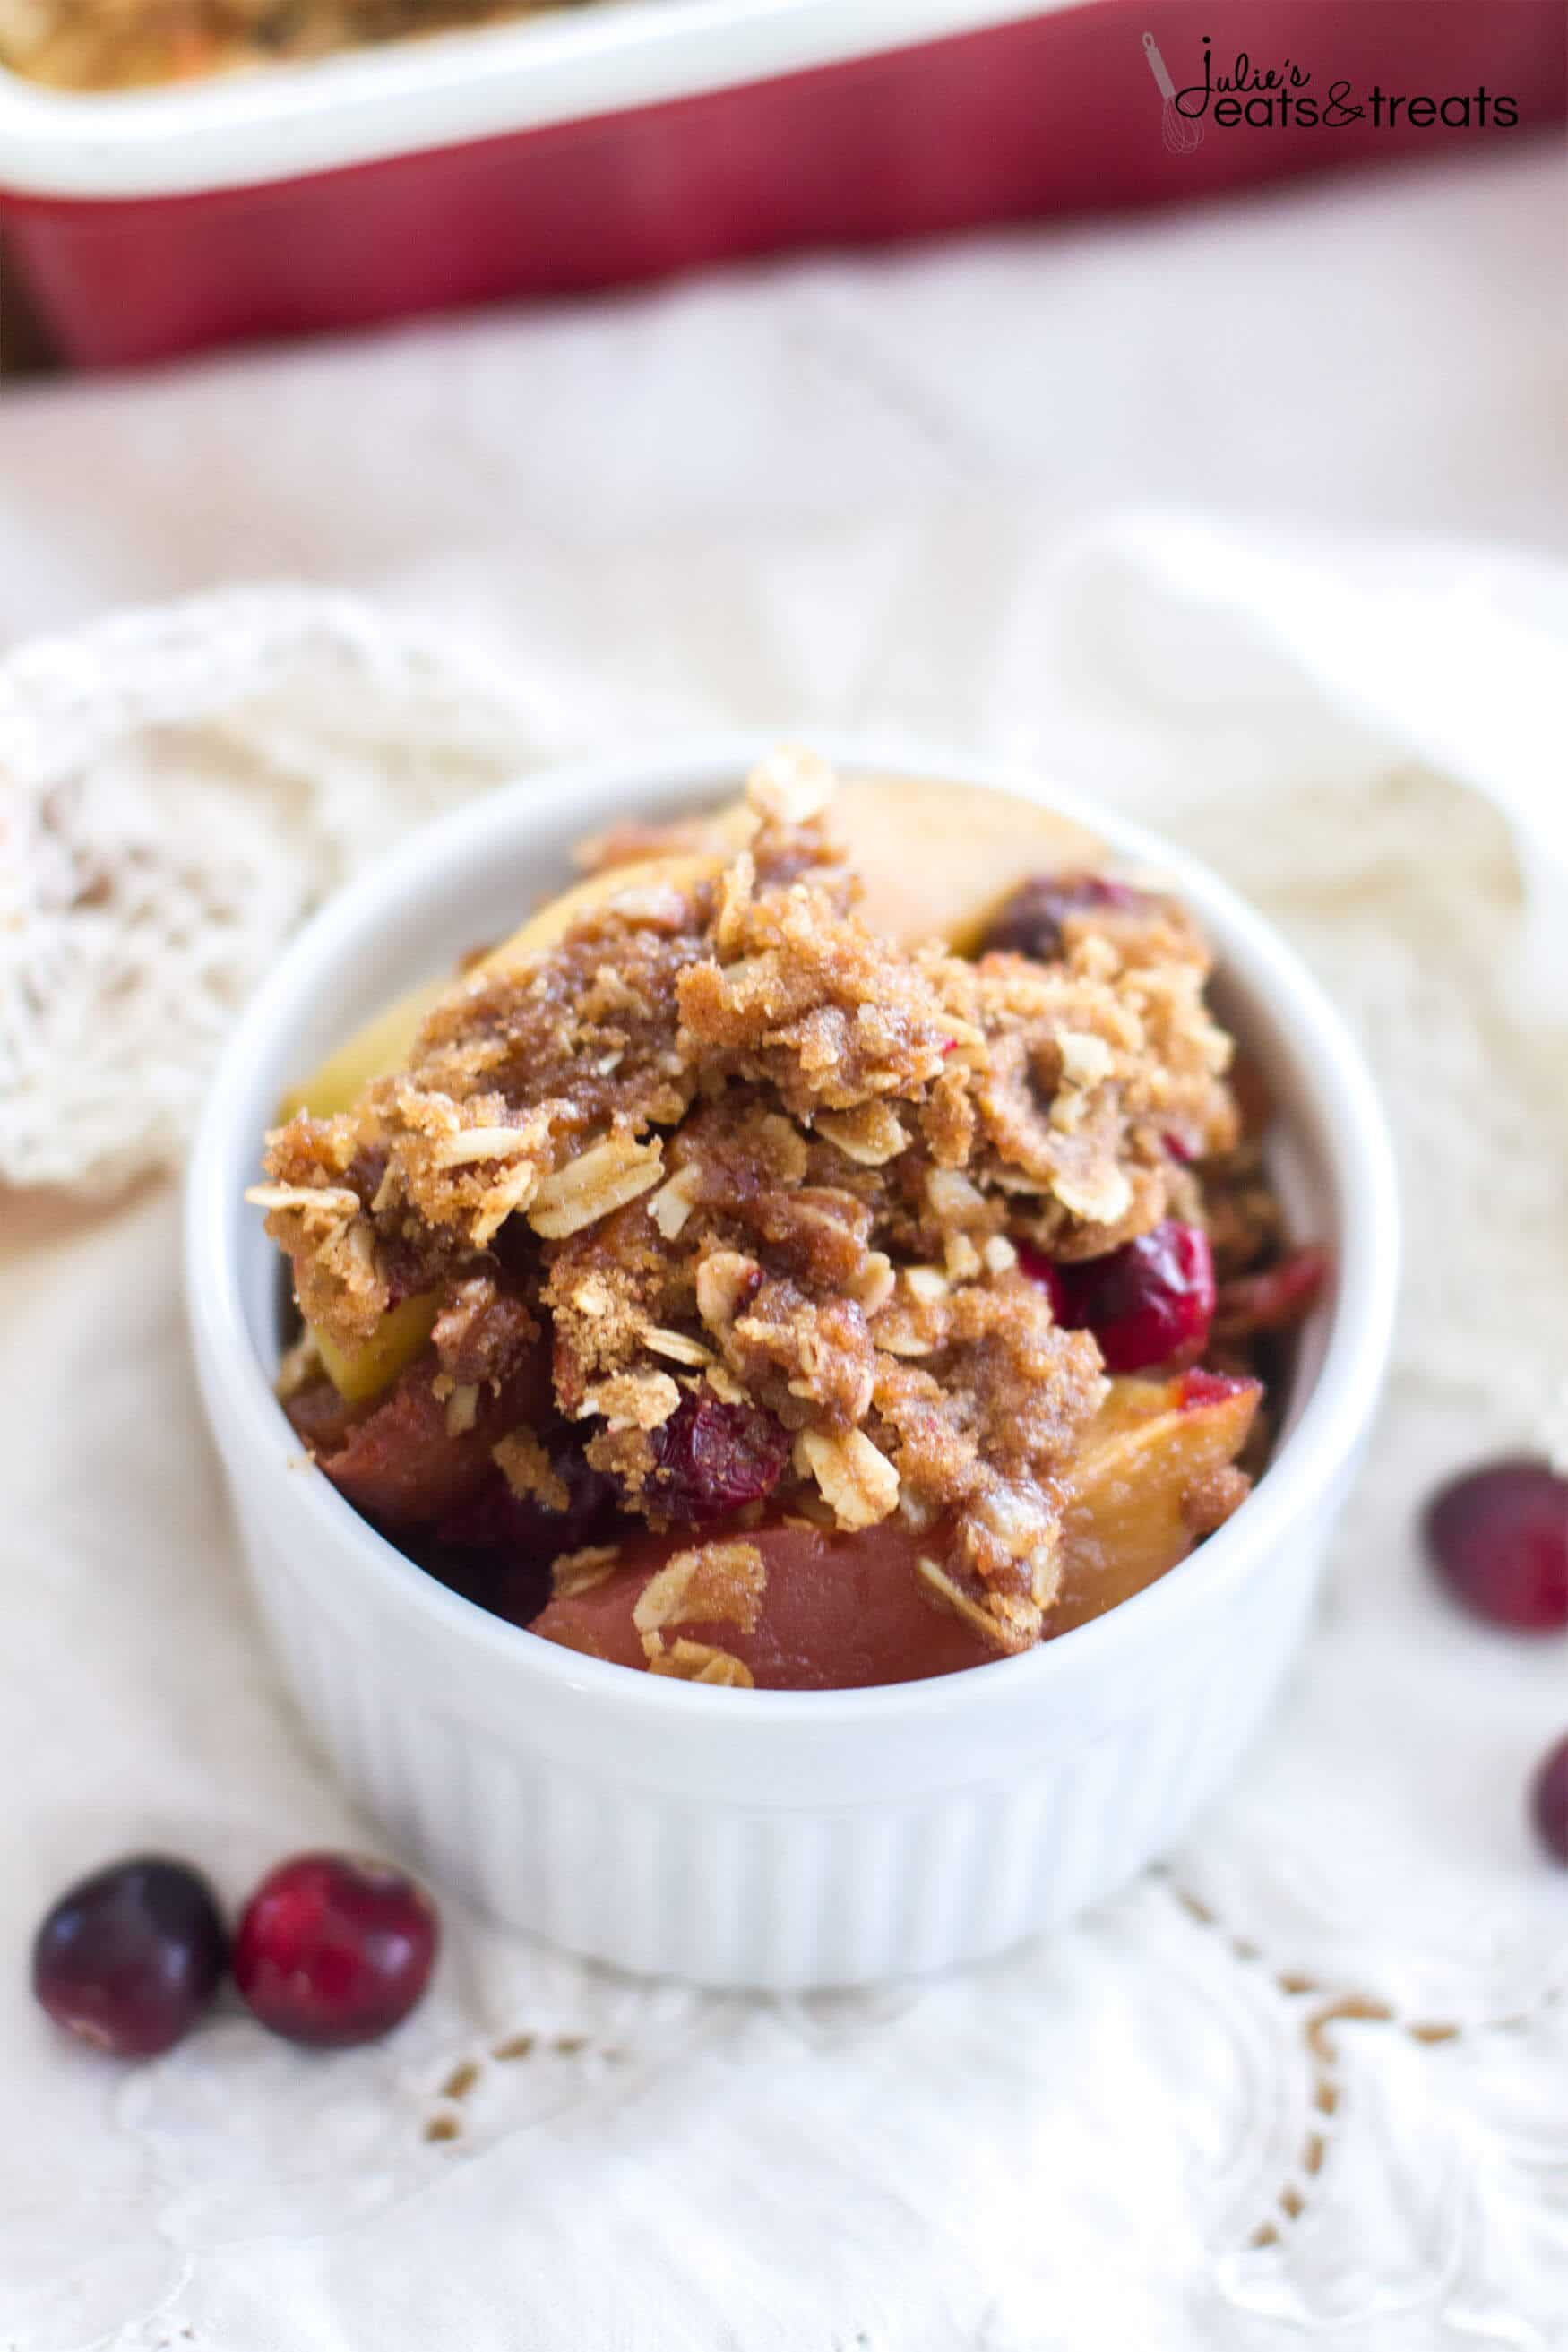 Cranberry Apple Cobbler is filled with sweet apples and fresh cranberries, baked then topped with the best brown sugar cinnamon crumble!